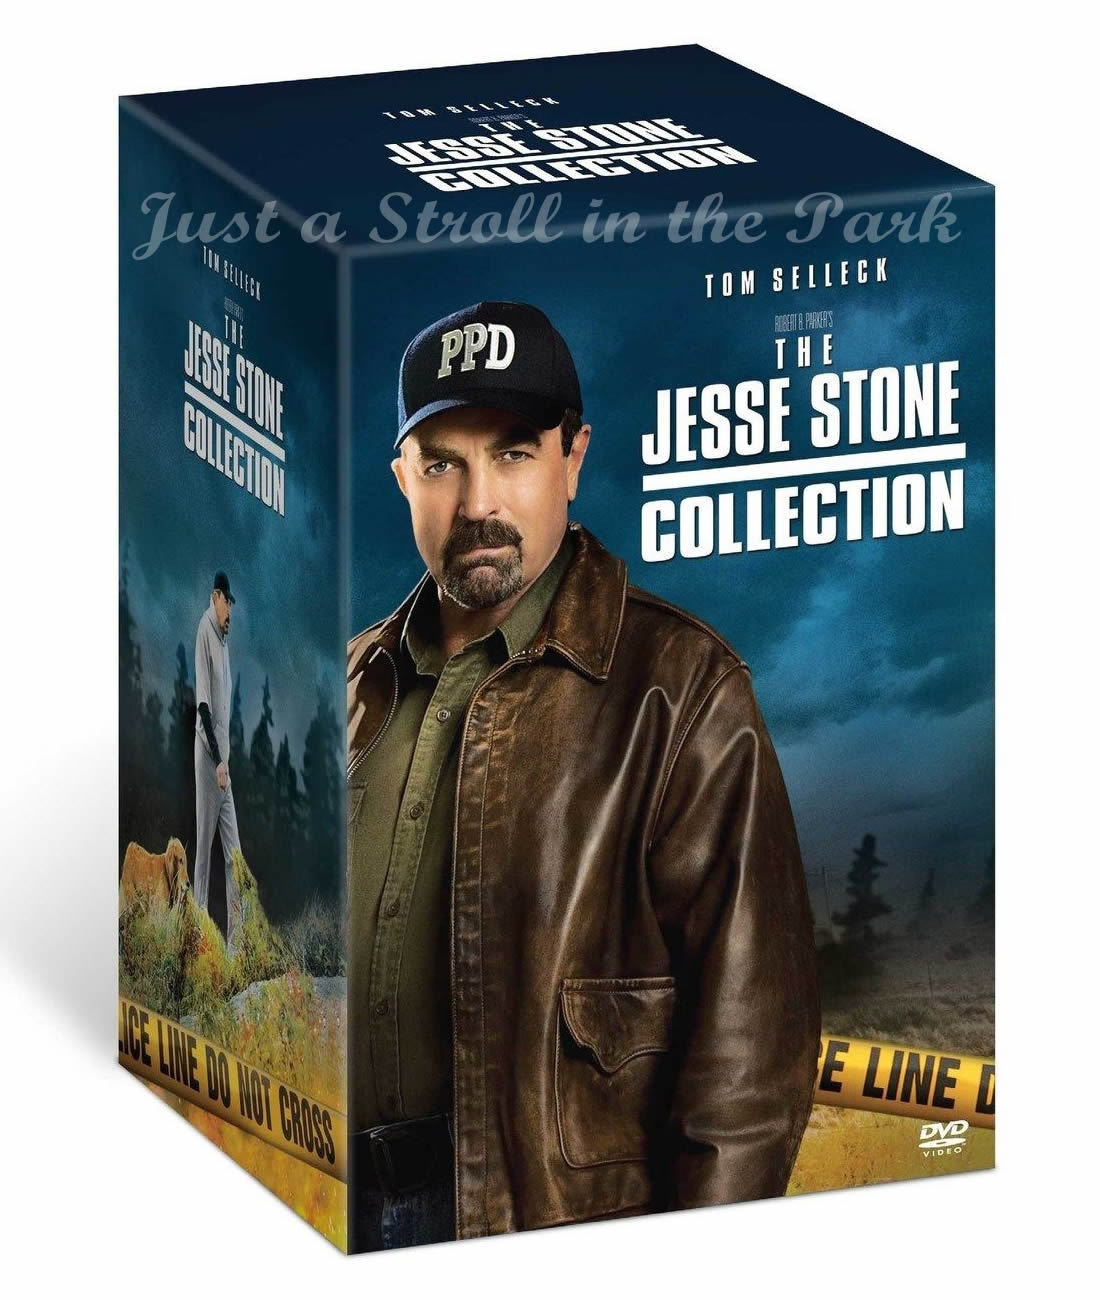 Jesse Stone Series Limited Edition Tom Selleck Collection